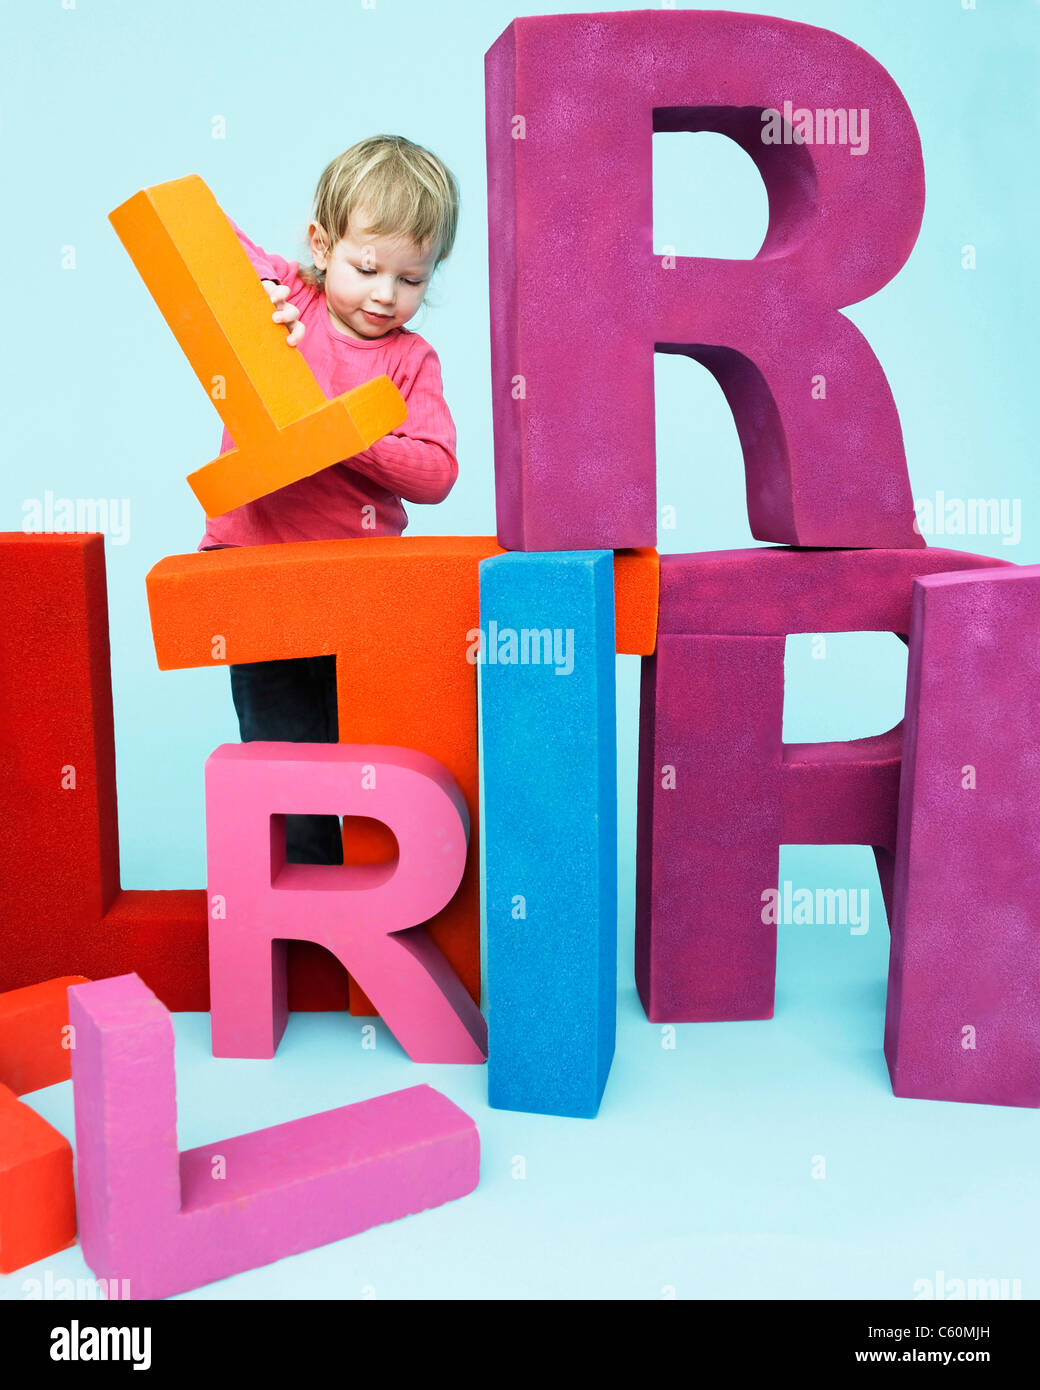 Toddler playing with oversize letters - Stock Image